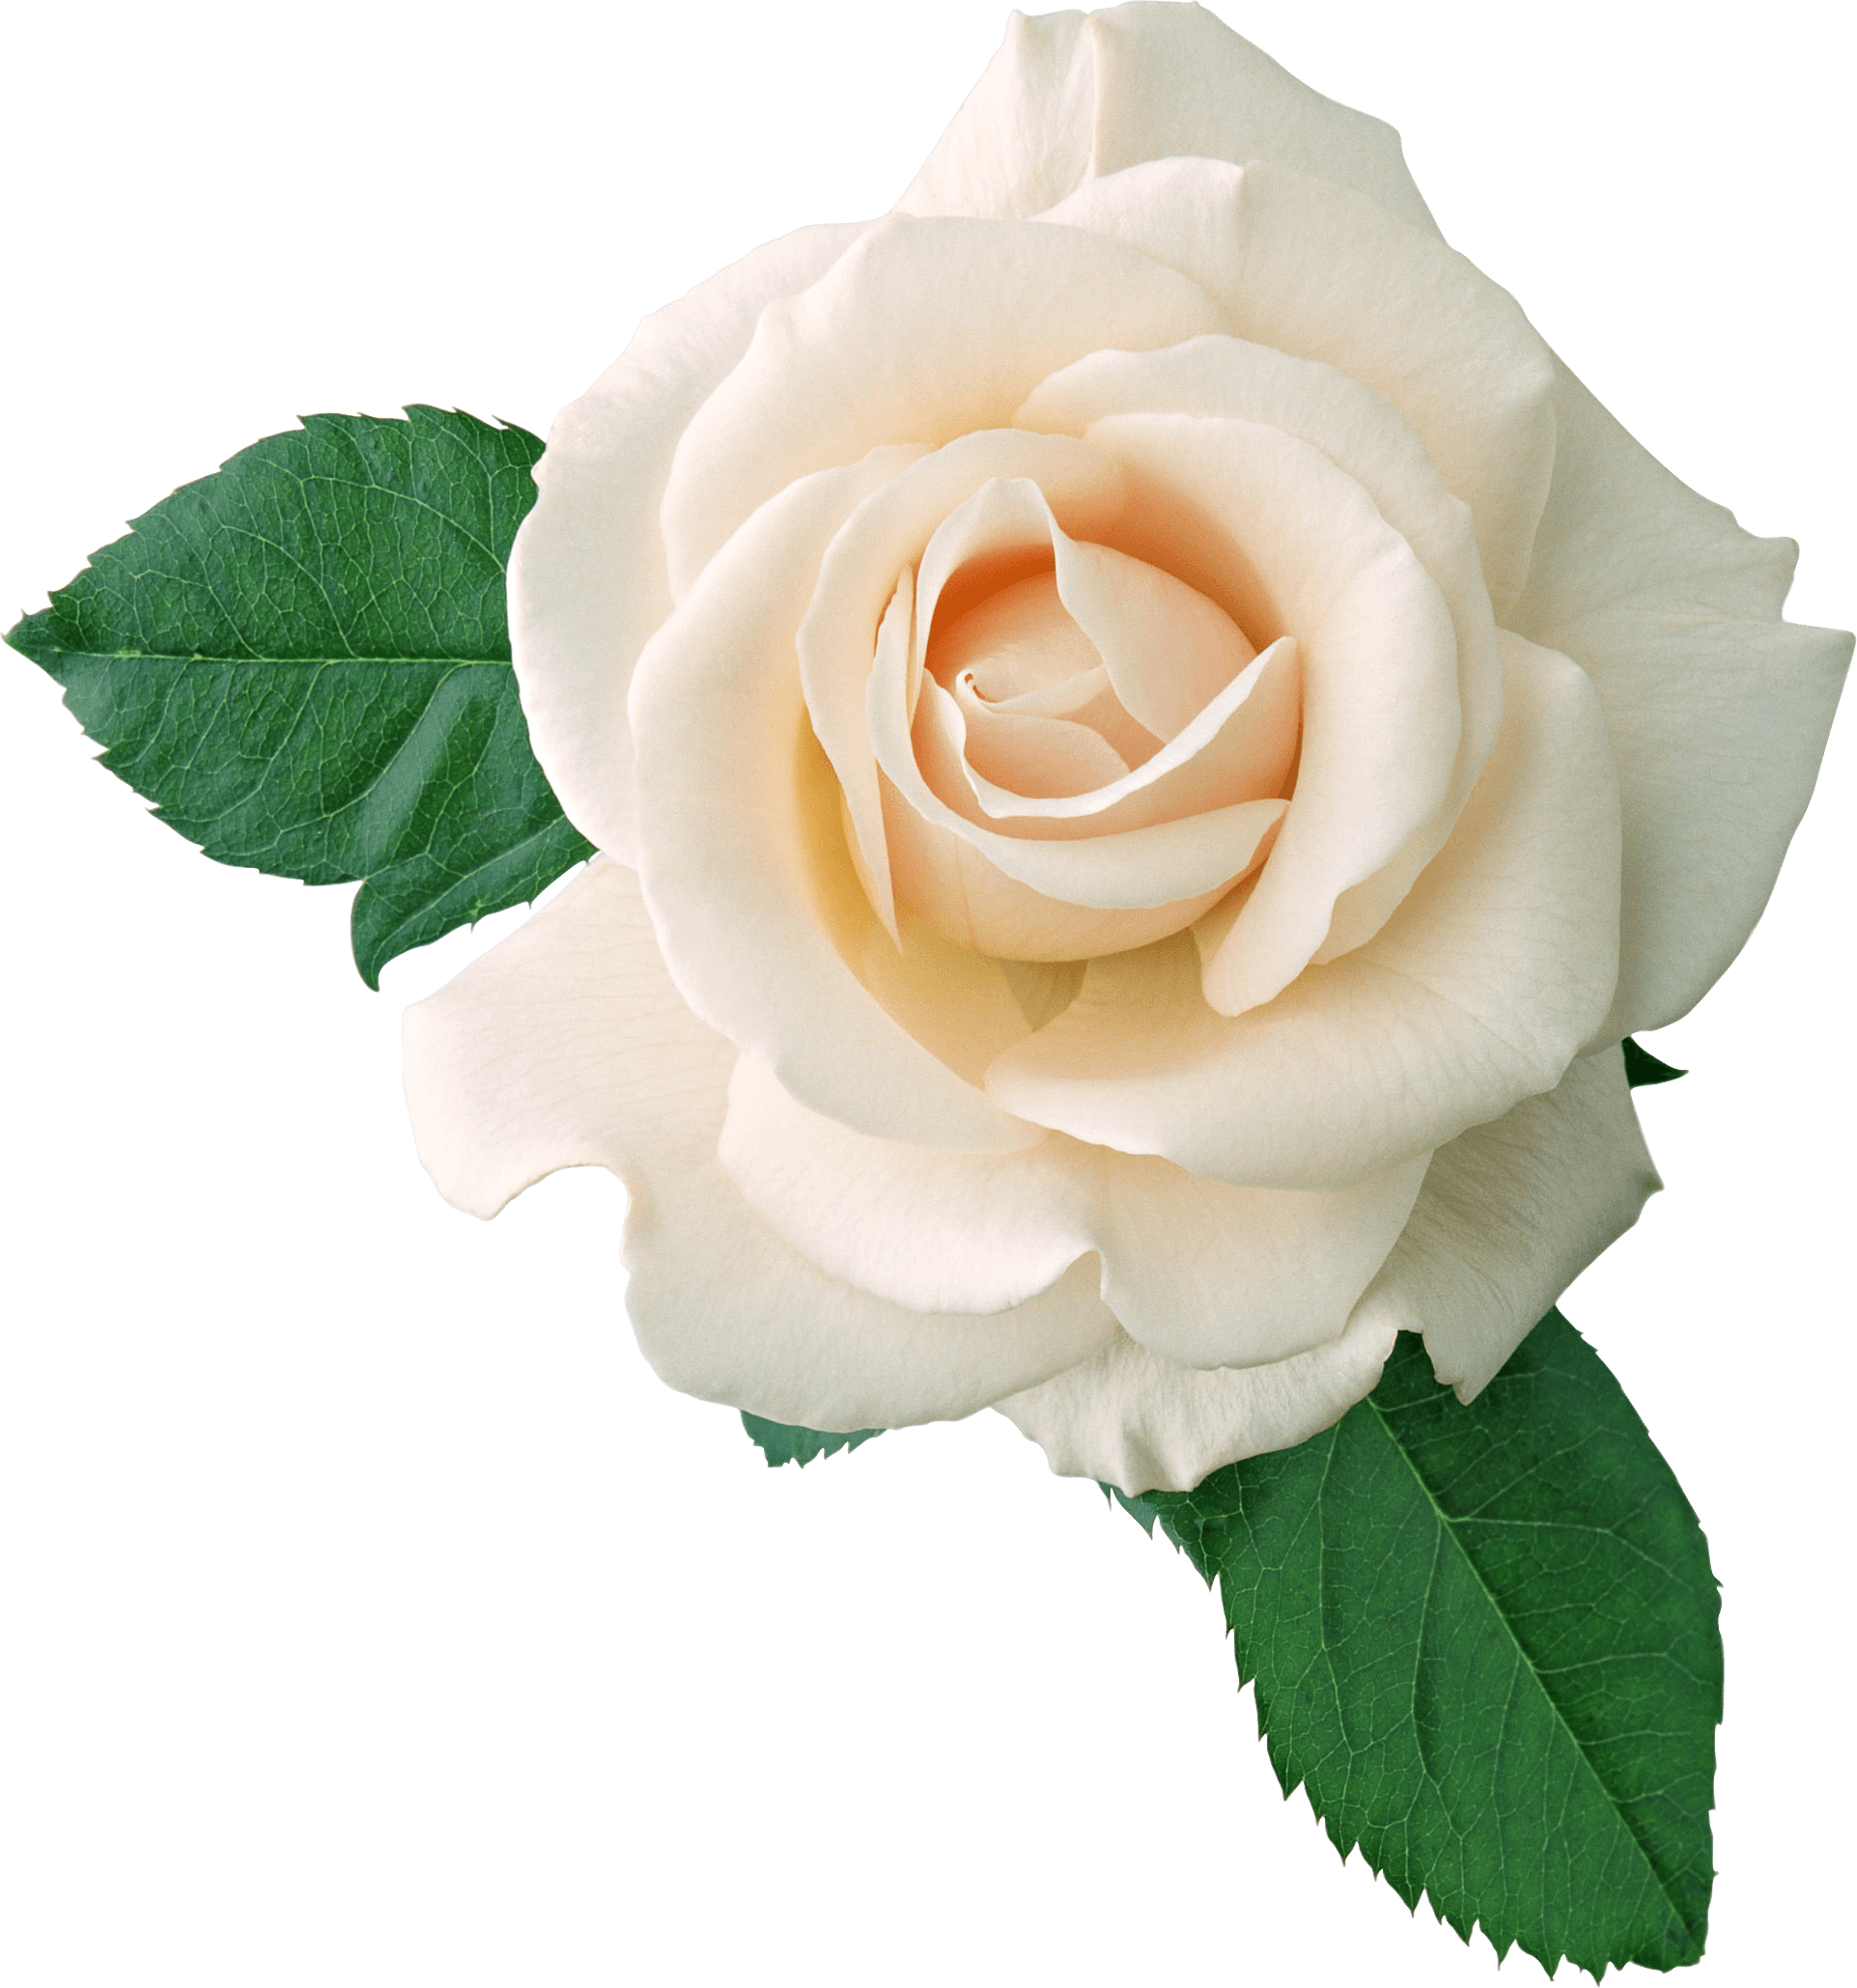 Transparent png images roses. White rose on leaves